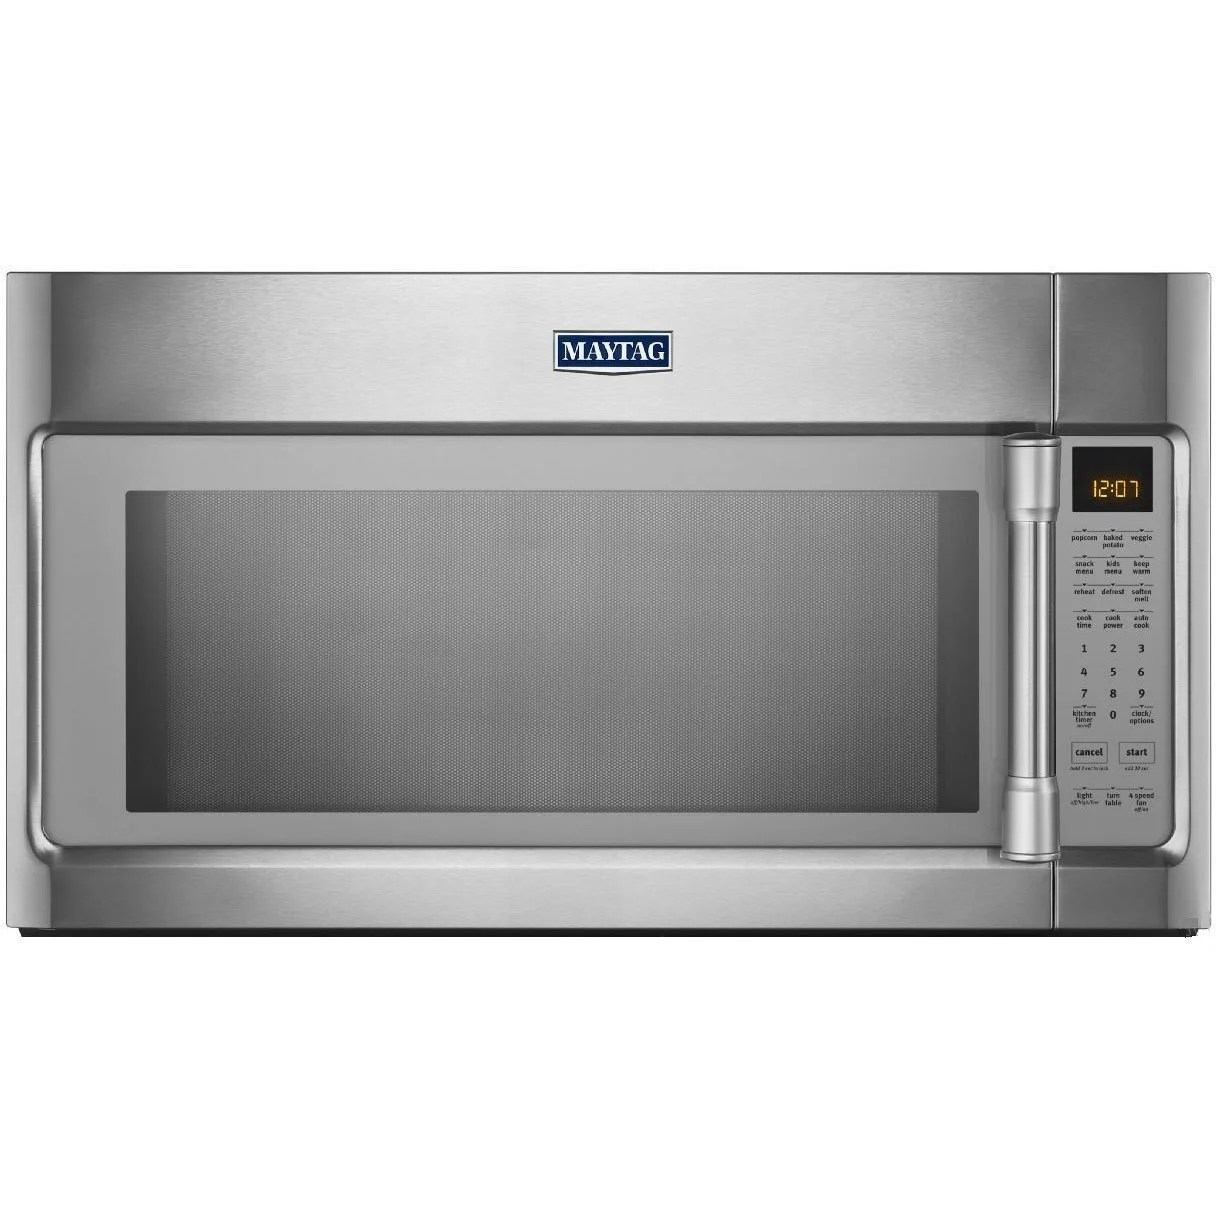 Maytag 2 1 Cubic Foot Over The Range Stainless Steel Microwave Oven Overstock 10180800